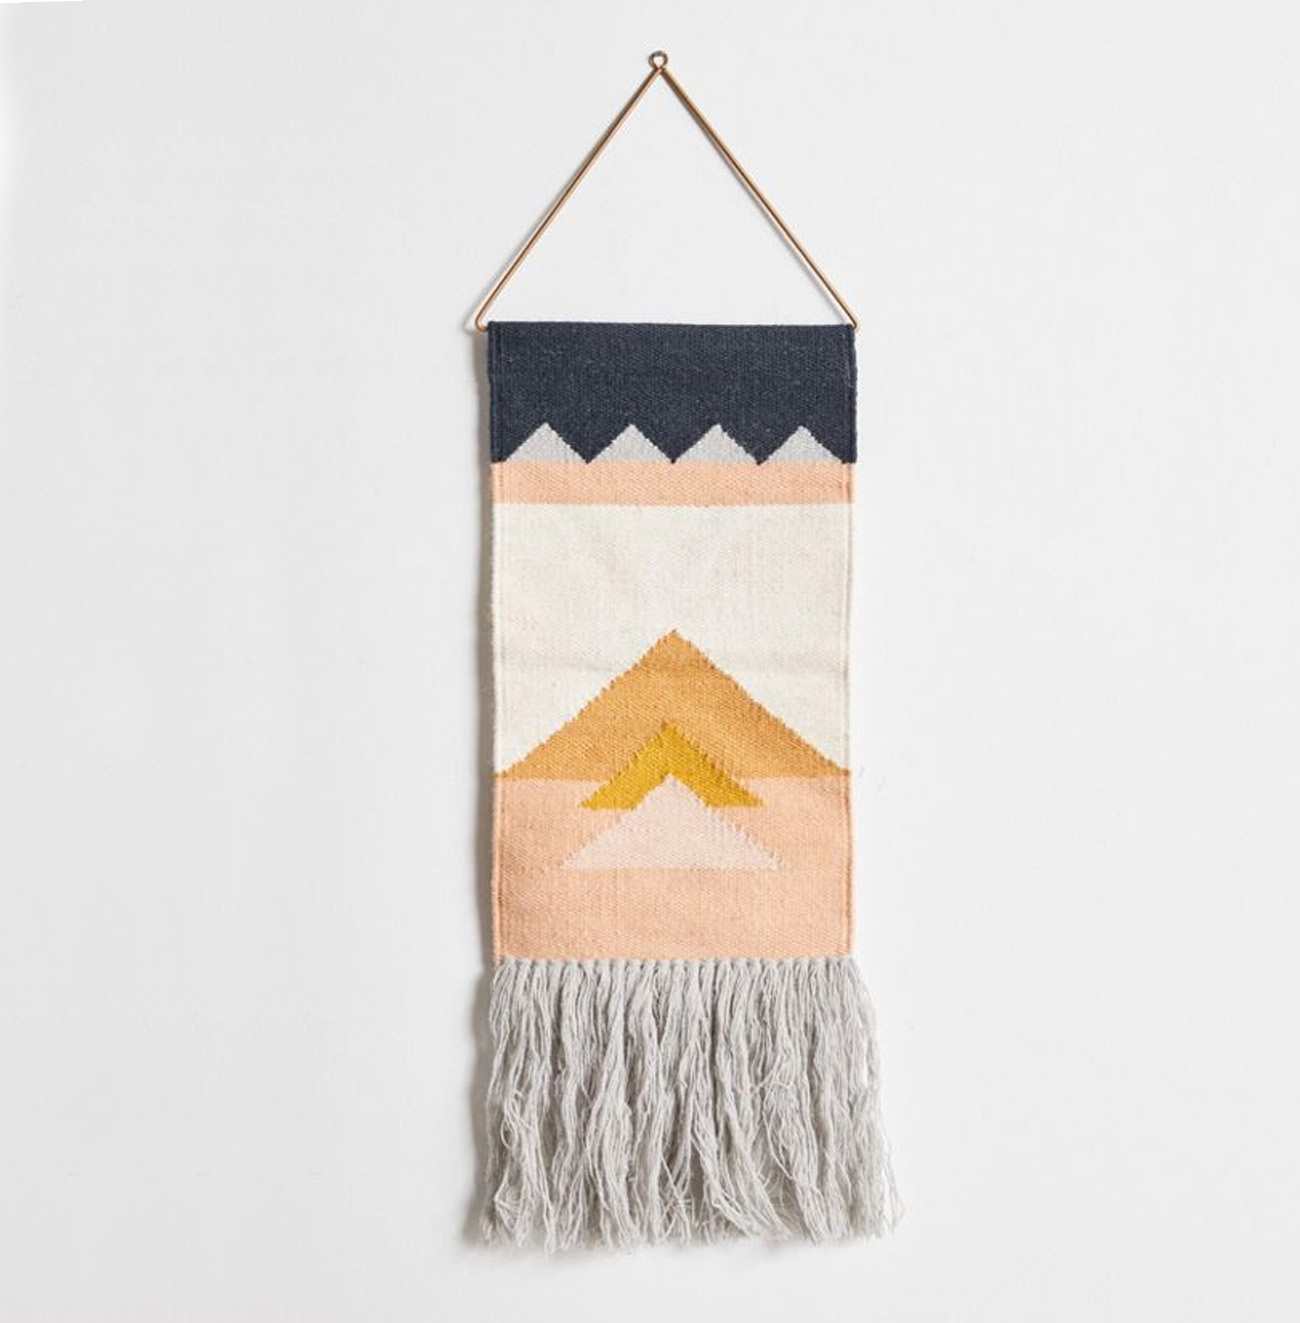 Cleo Wall Hanging from Urban Outfitters